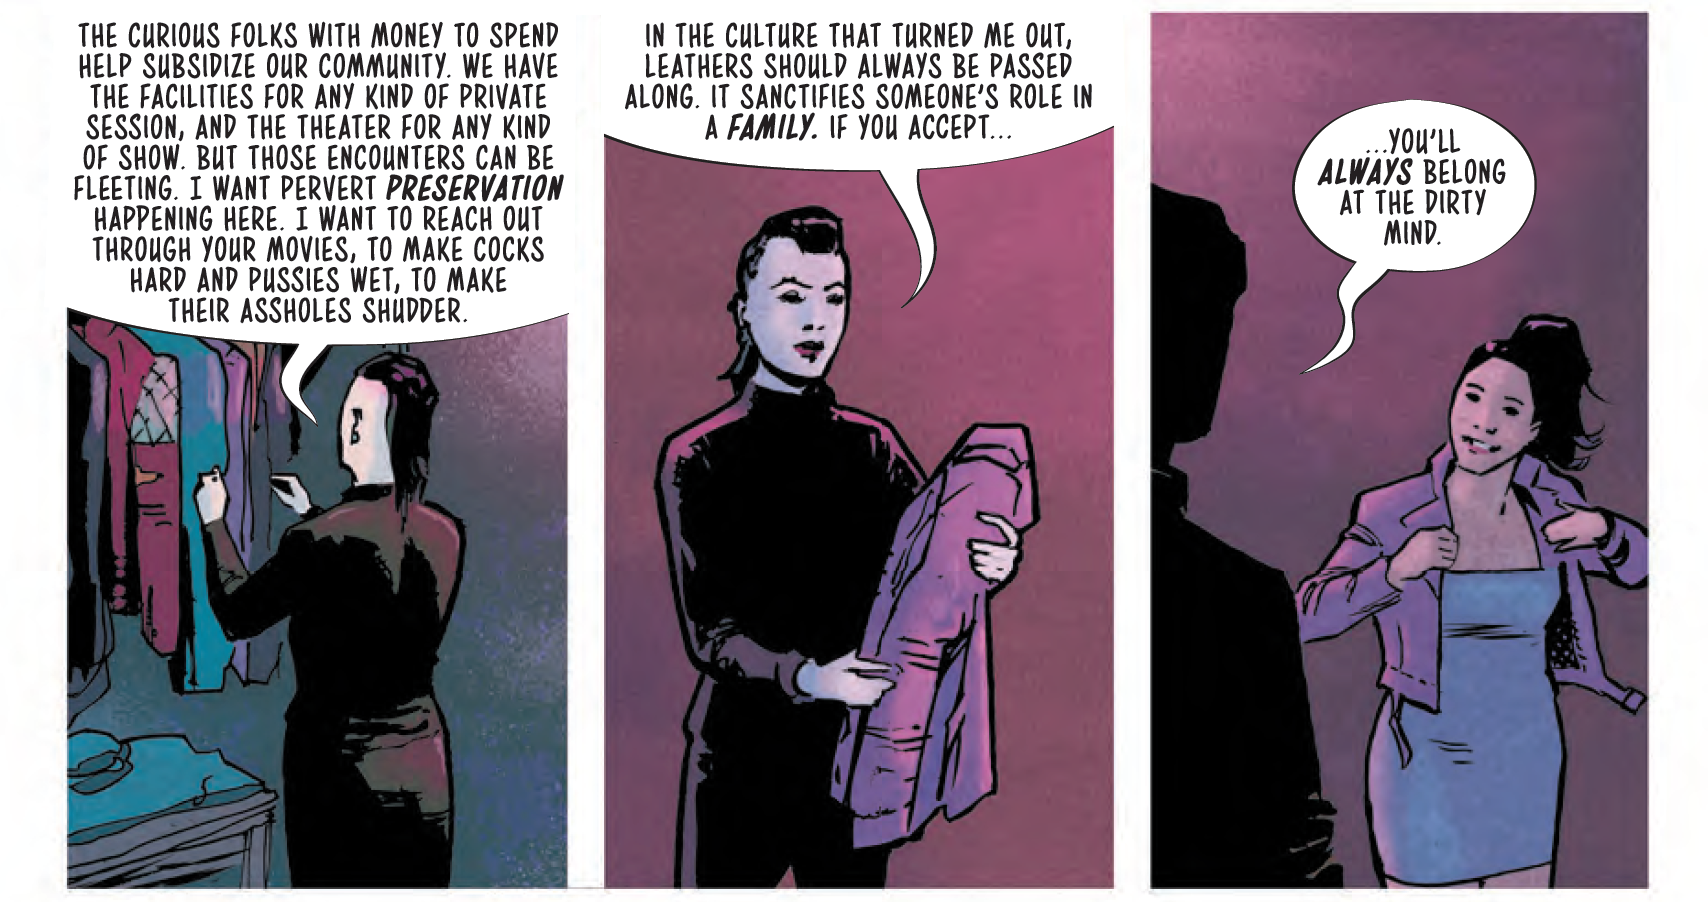 """Panel 1: A slim figure dressed in black with an undercut faces a closet in a dim room with purple-red lighting. They say """"The curious folks with money to spend help subsidize our community. We have the facilities for any kind of private session, and the theater for any kind of show. But those encounters can be fleeting. I want pervert preservation happening here. I want to reach out through your movies, to make cocks hard and pussies wet, to make their assholes shudder."""" Panel 2: The figure has turned around holding a jacket; we can see they have a pompadour and are wearing red lipstick. """"In the culture that turned me out, leathers should always be passed along. It sanctifies someone's role in a family. If you accept..."""" Panel 3: The angle shifts and a younger Avory is putting on the jacket. The figure watches, telling her, """"you'll always belong at the Dirty Mind."""""""